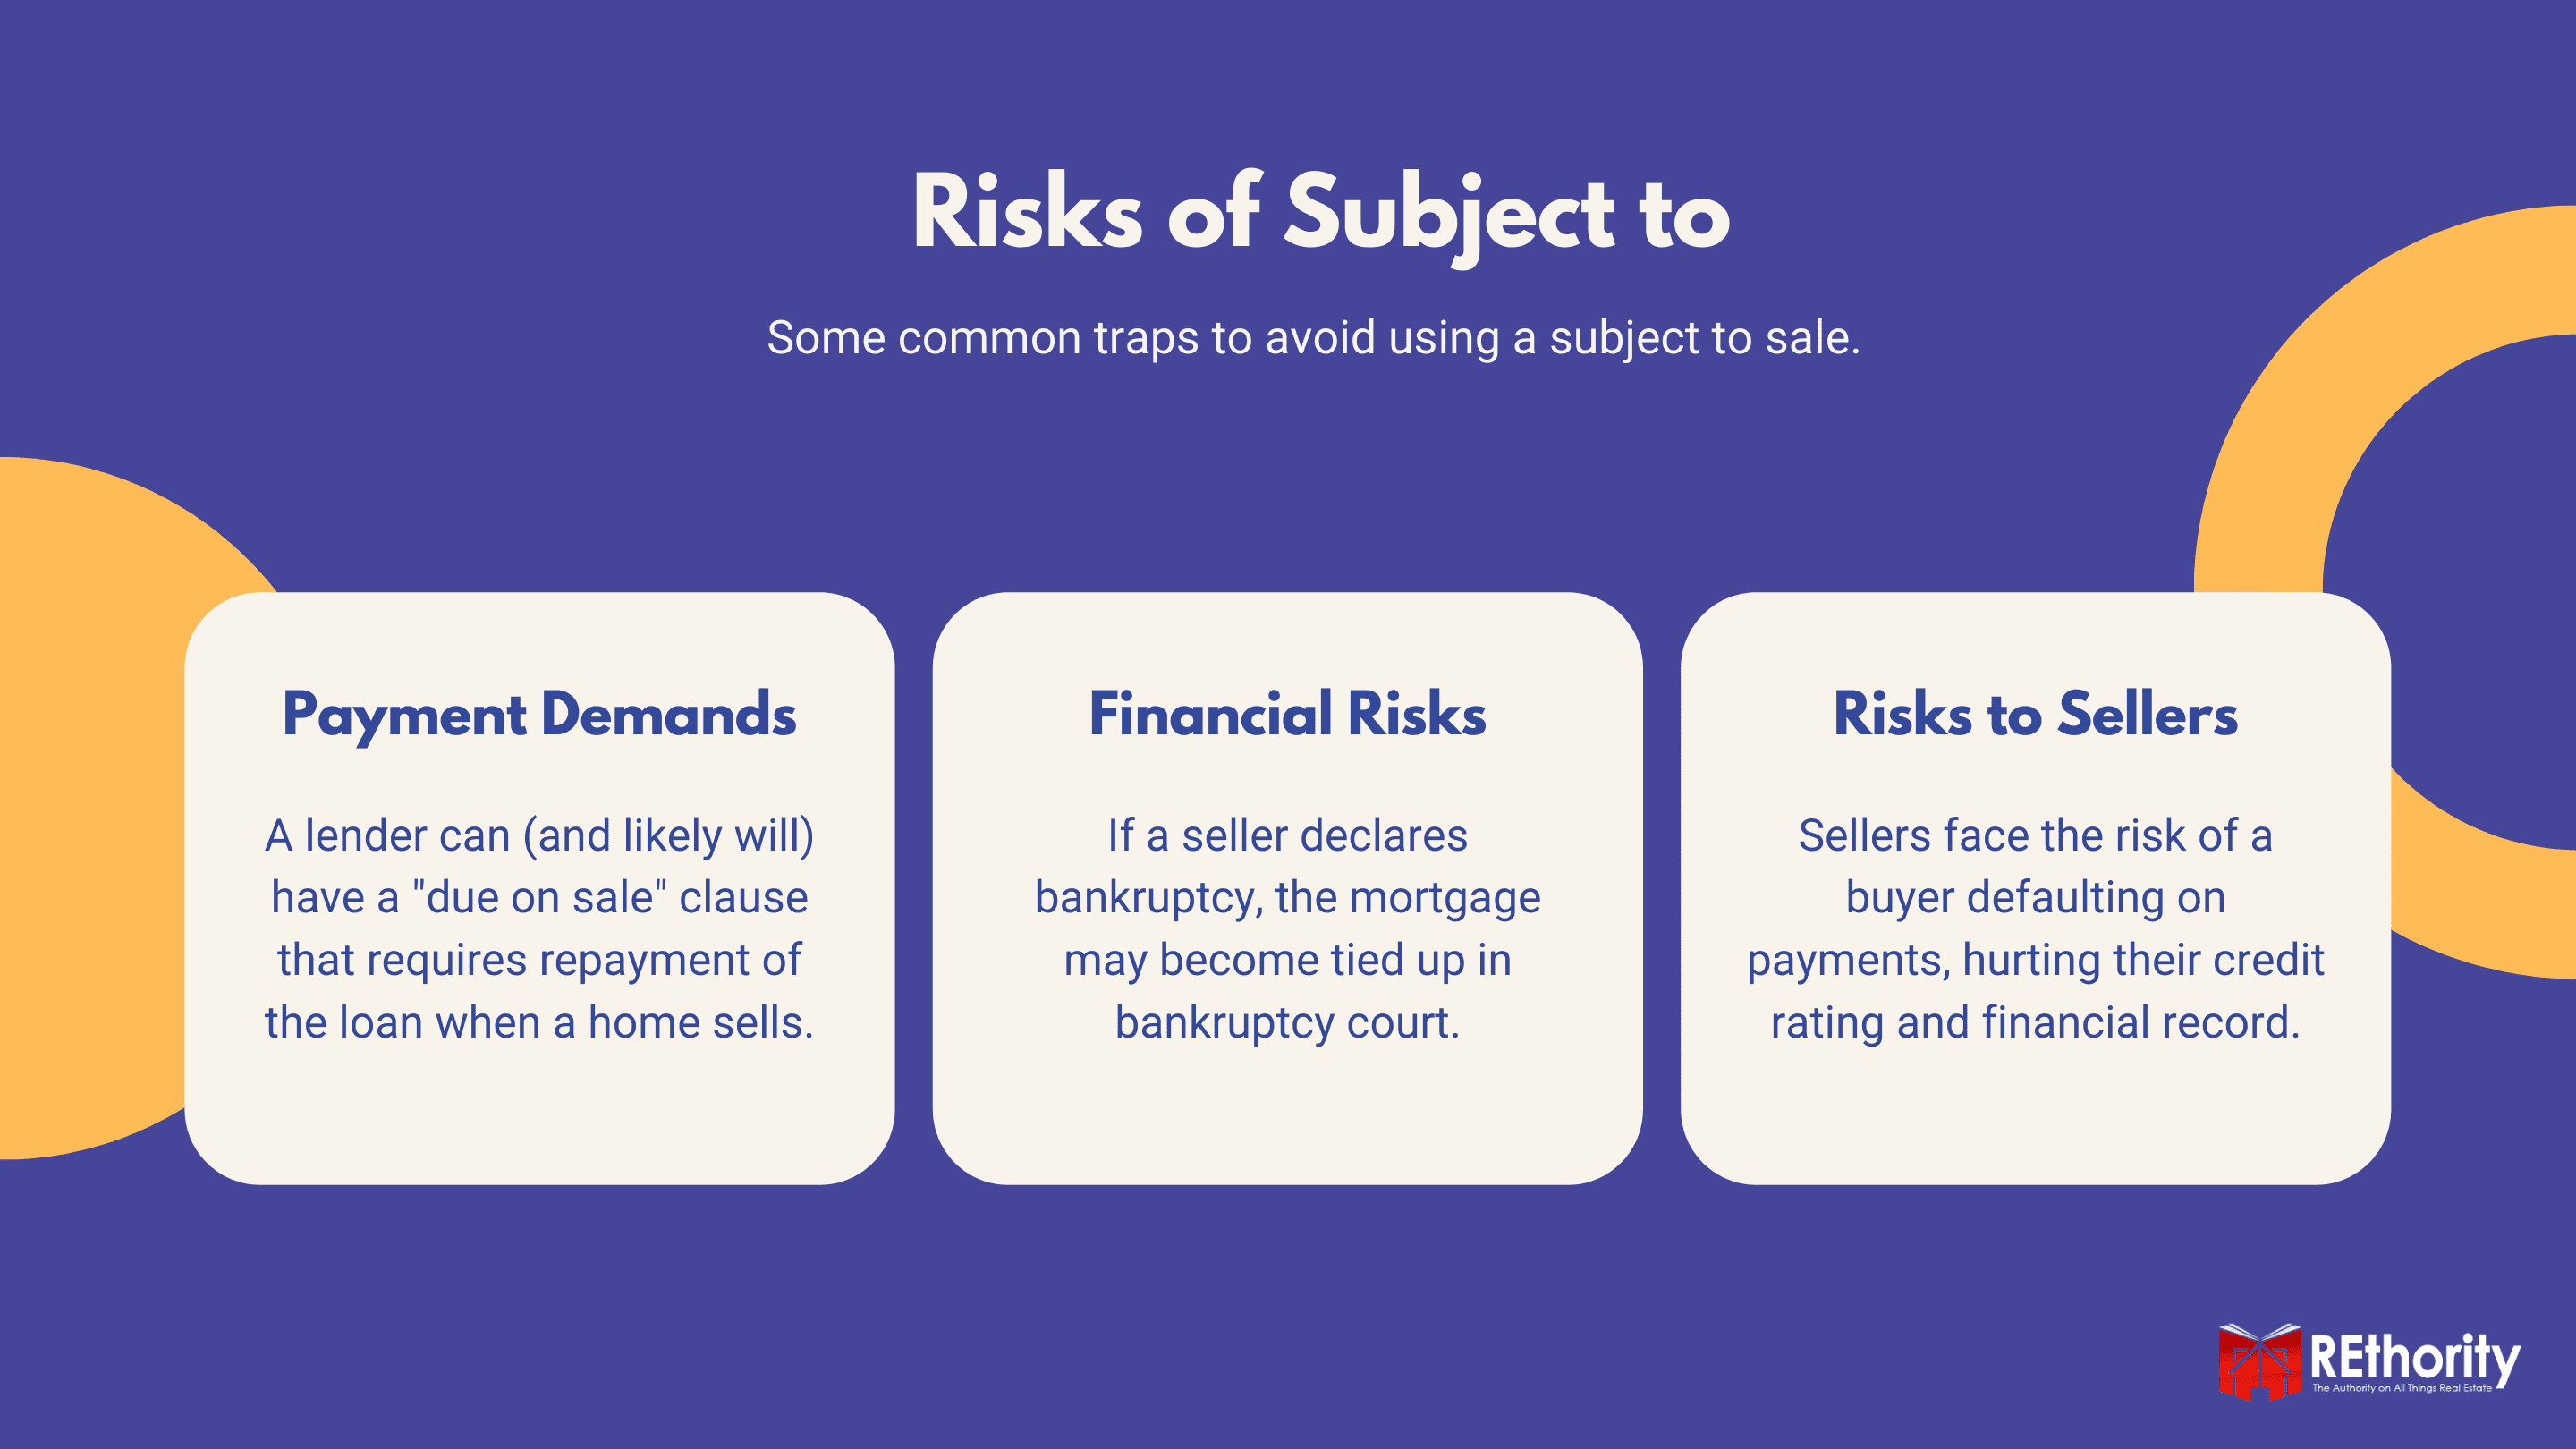 Risks of Subject To Home Sales